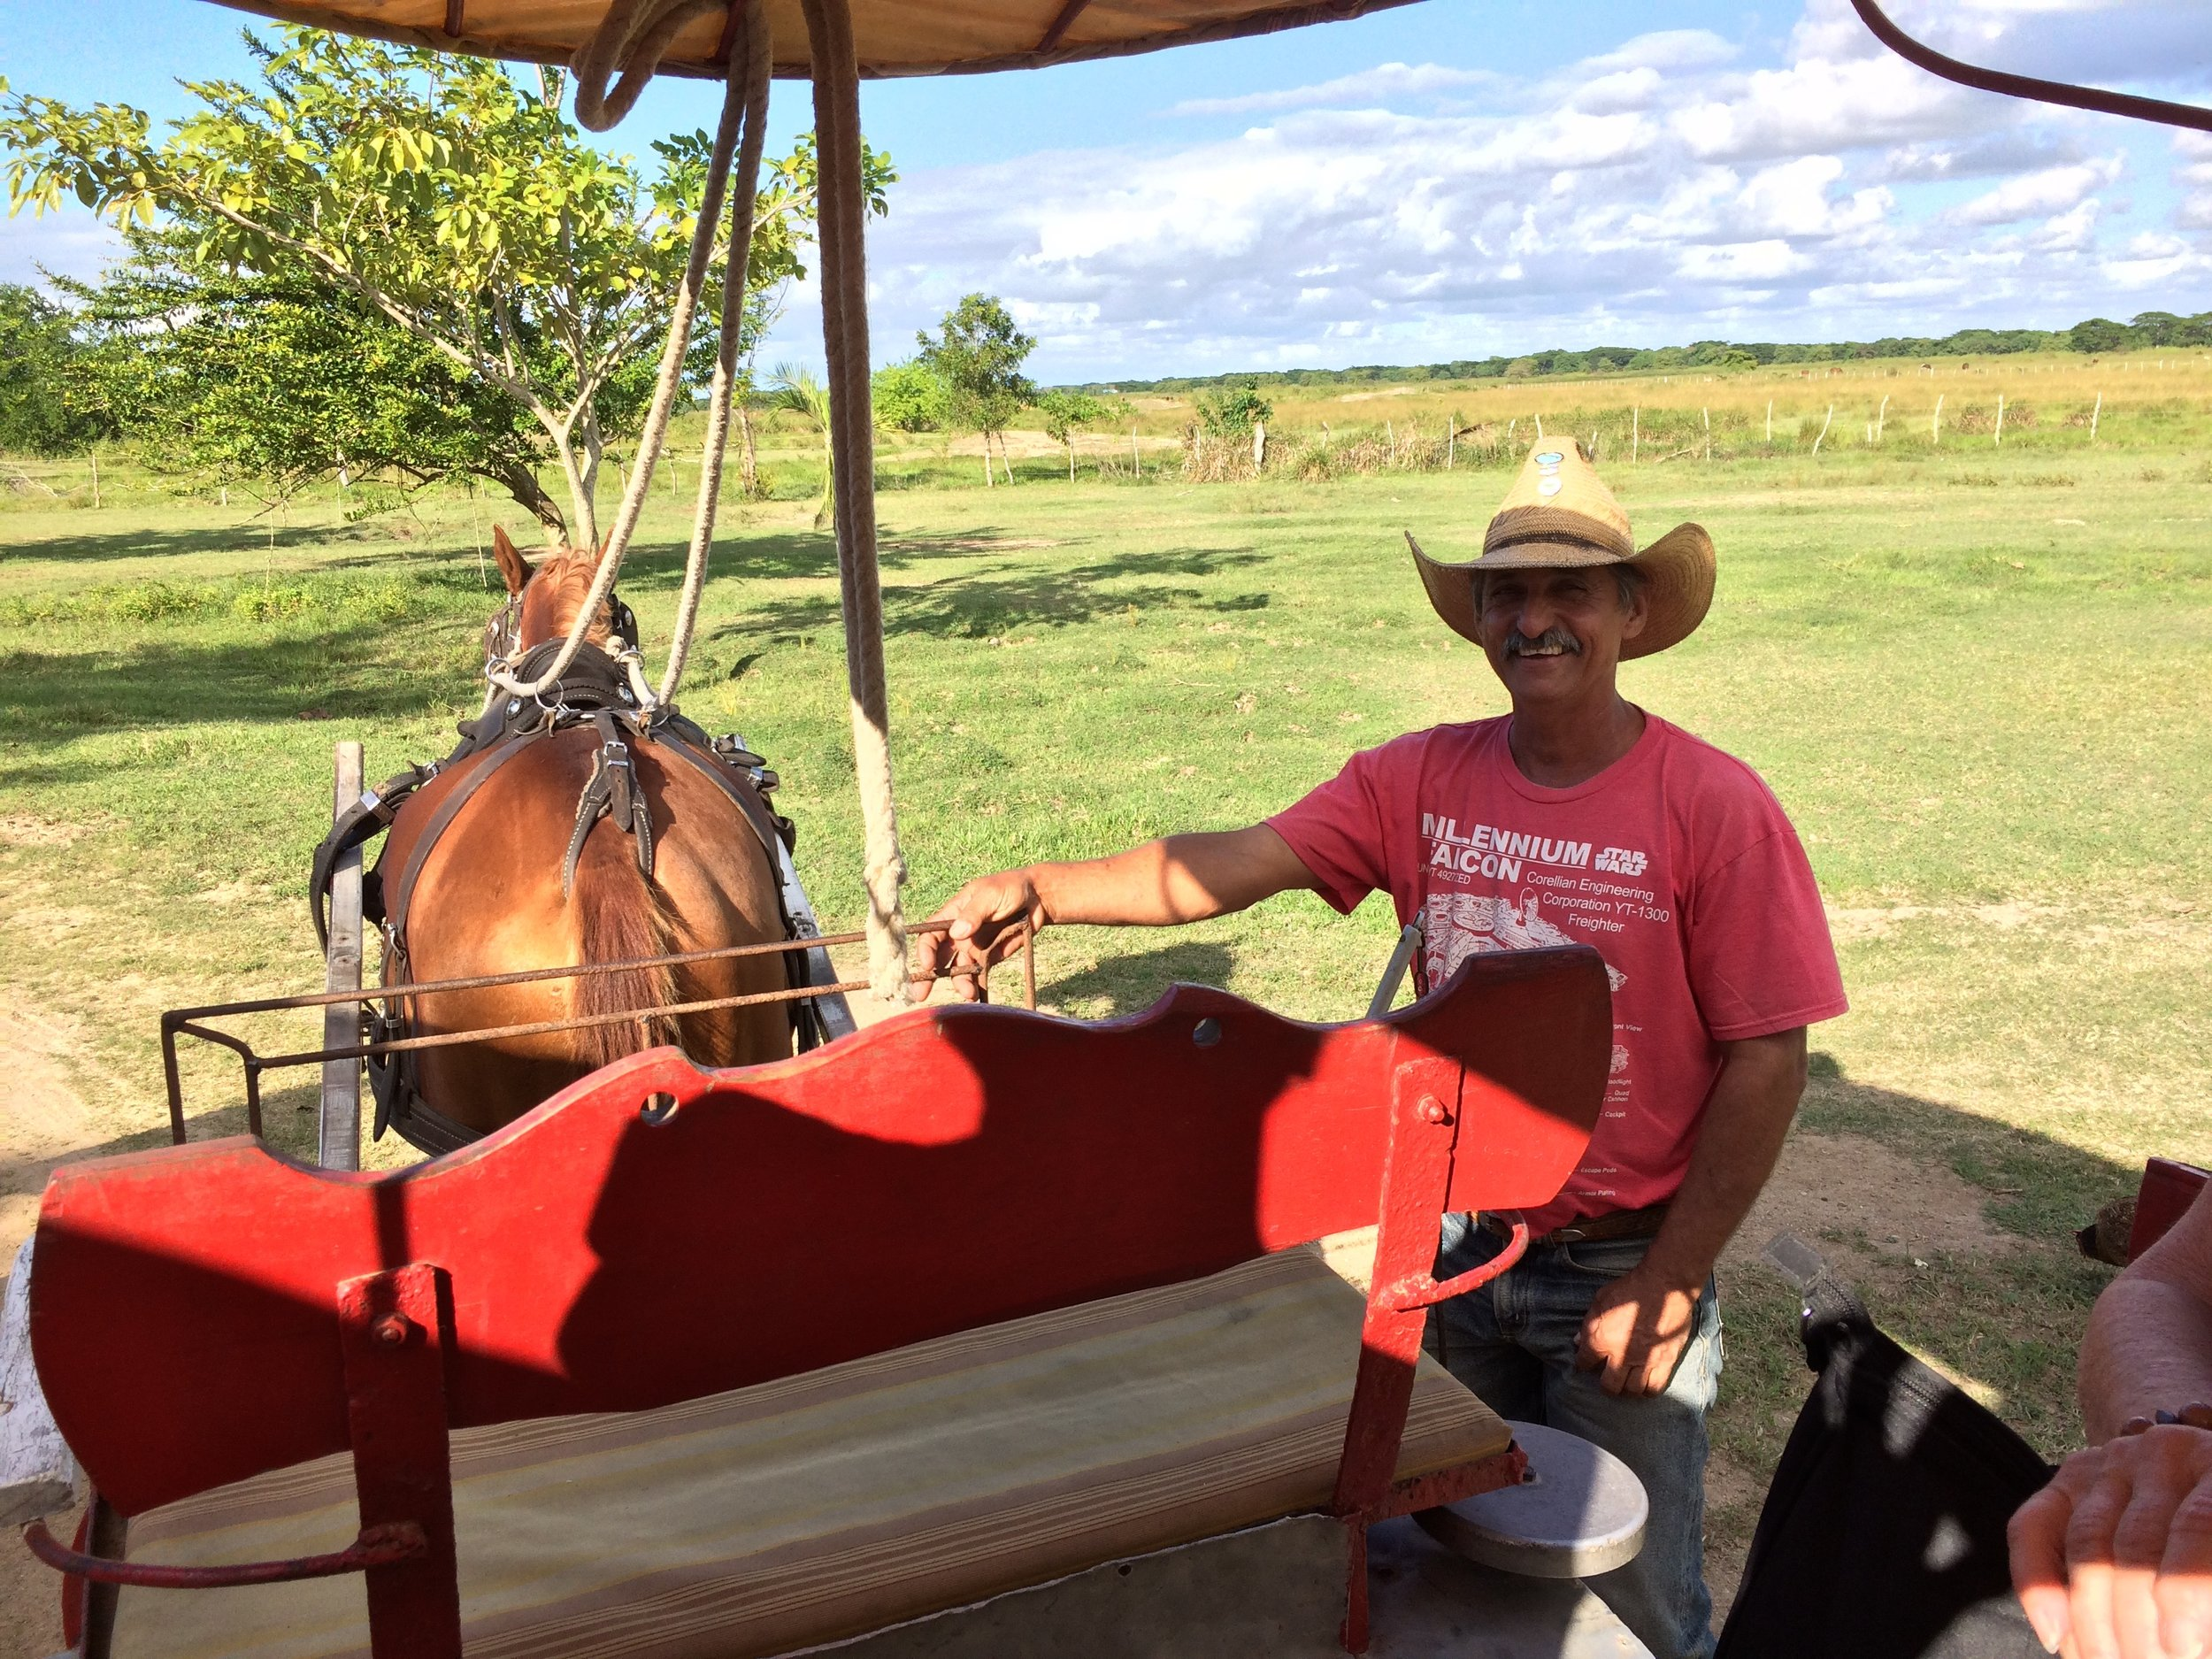 Jorge drove our conveyance at the King Ranch wearing a Millennium Falcon t-shirt